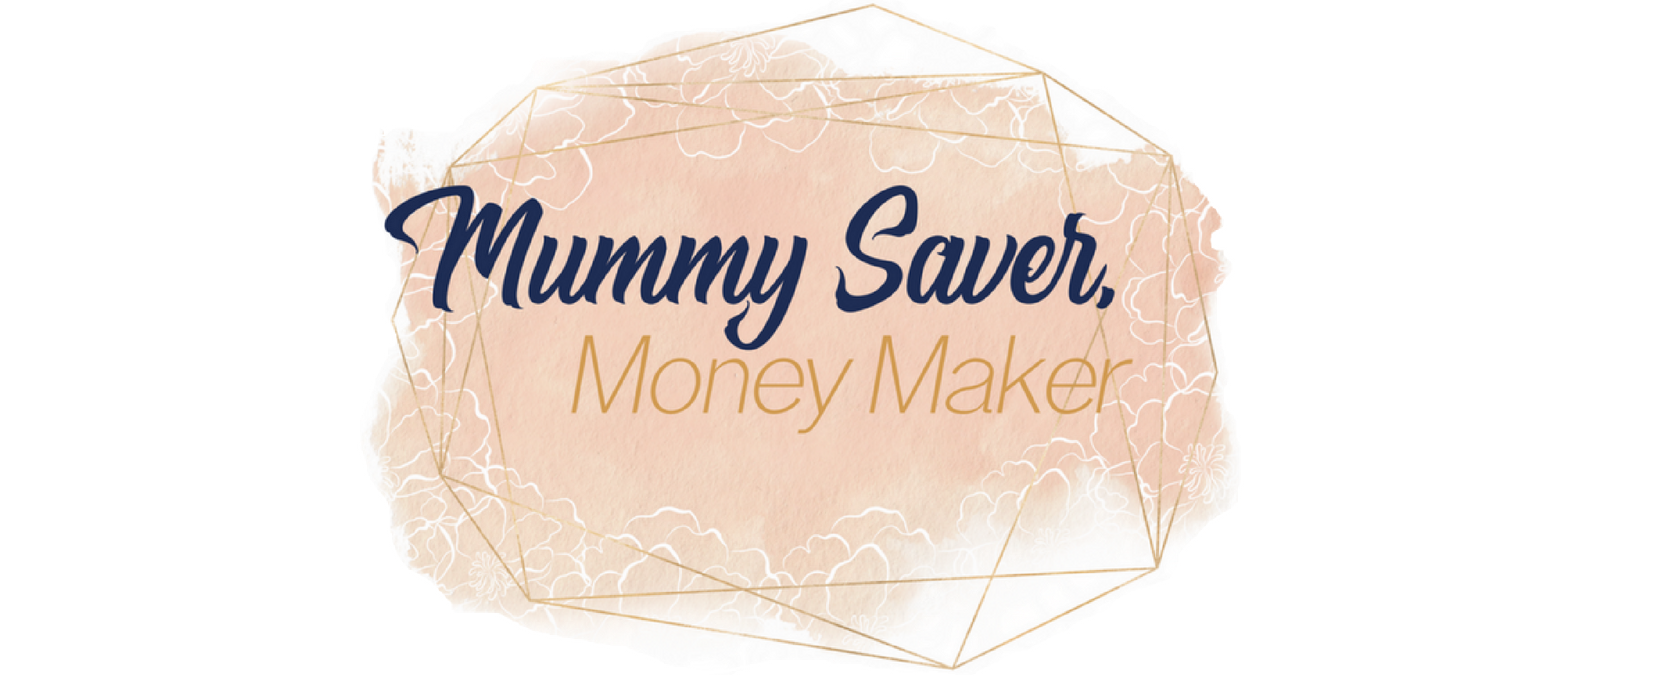 Mummy Saver, Money Maker